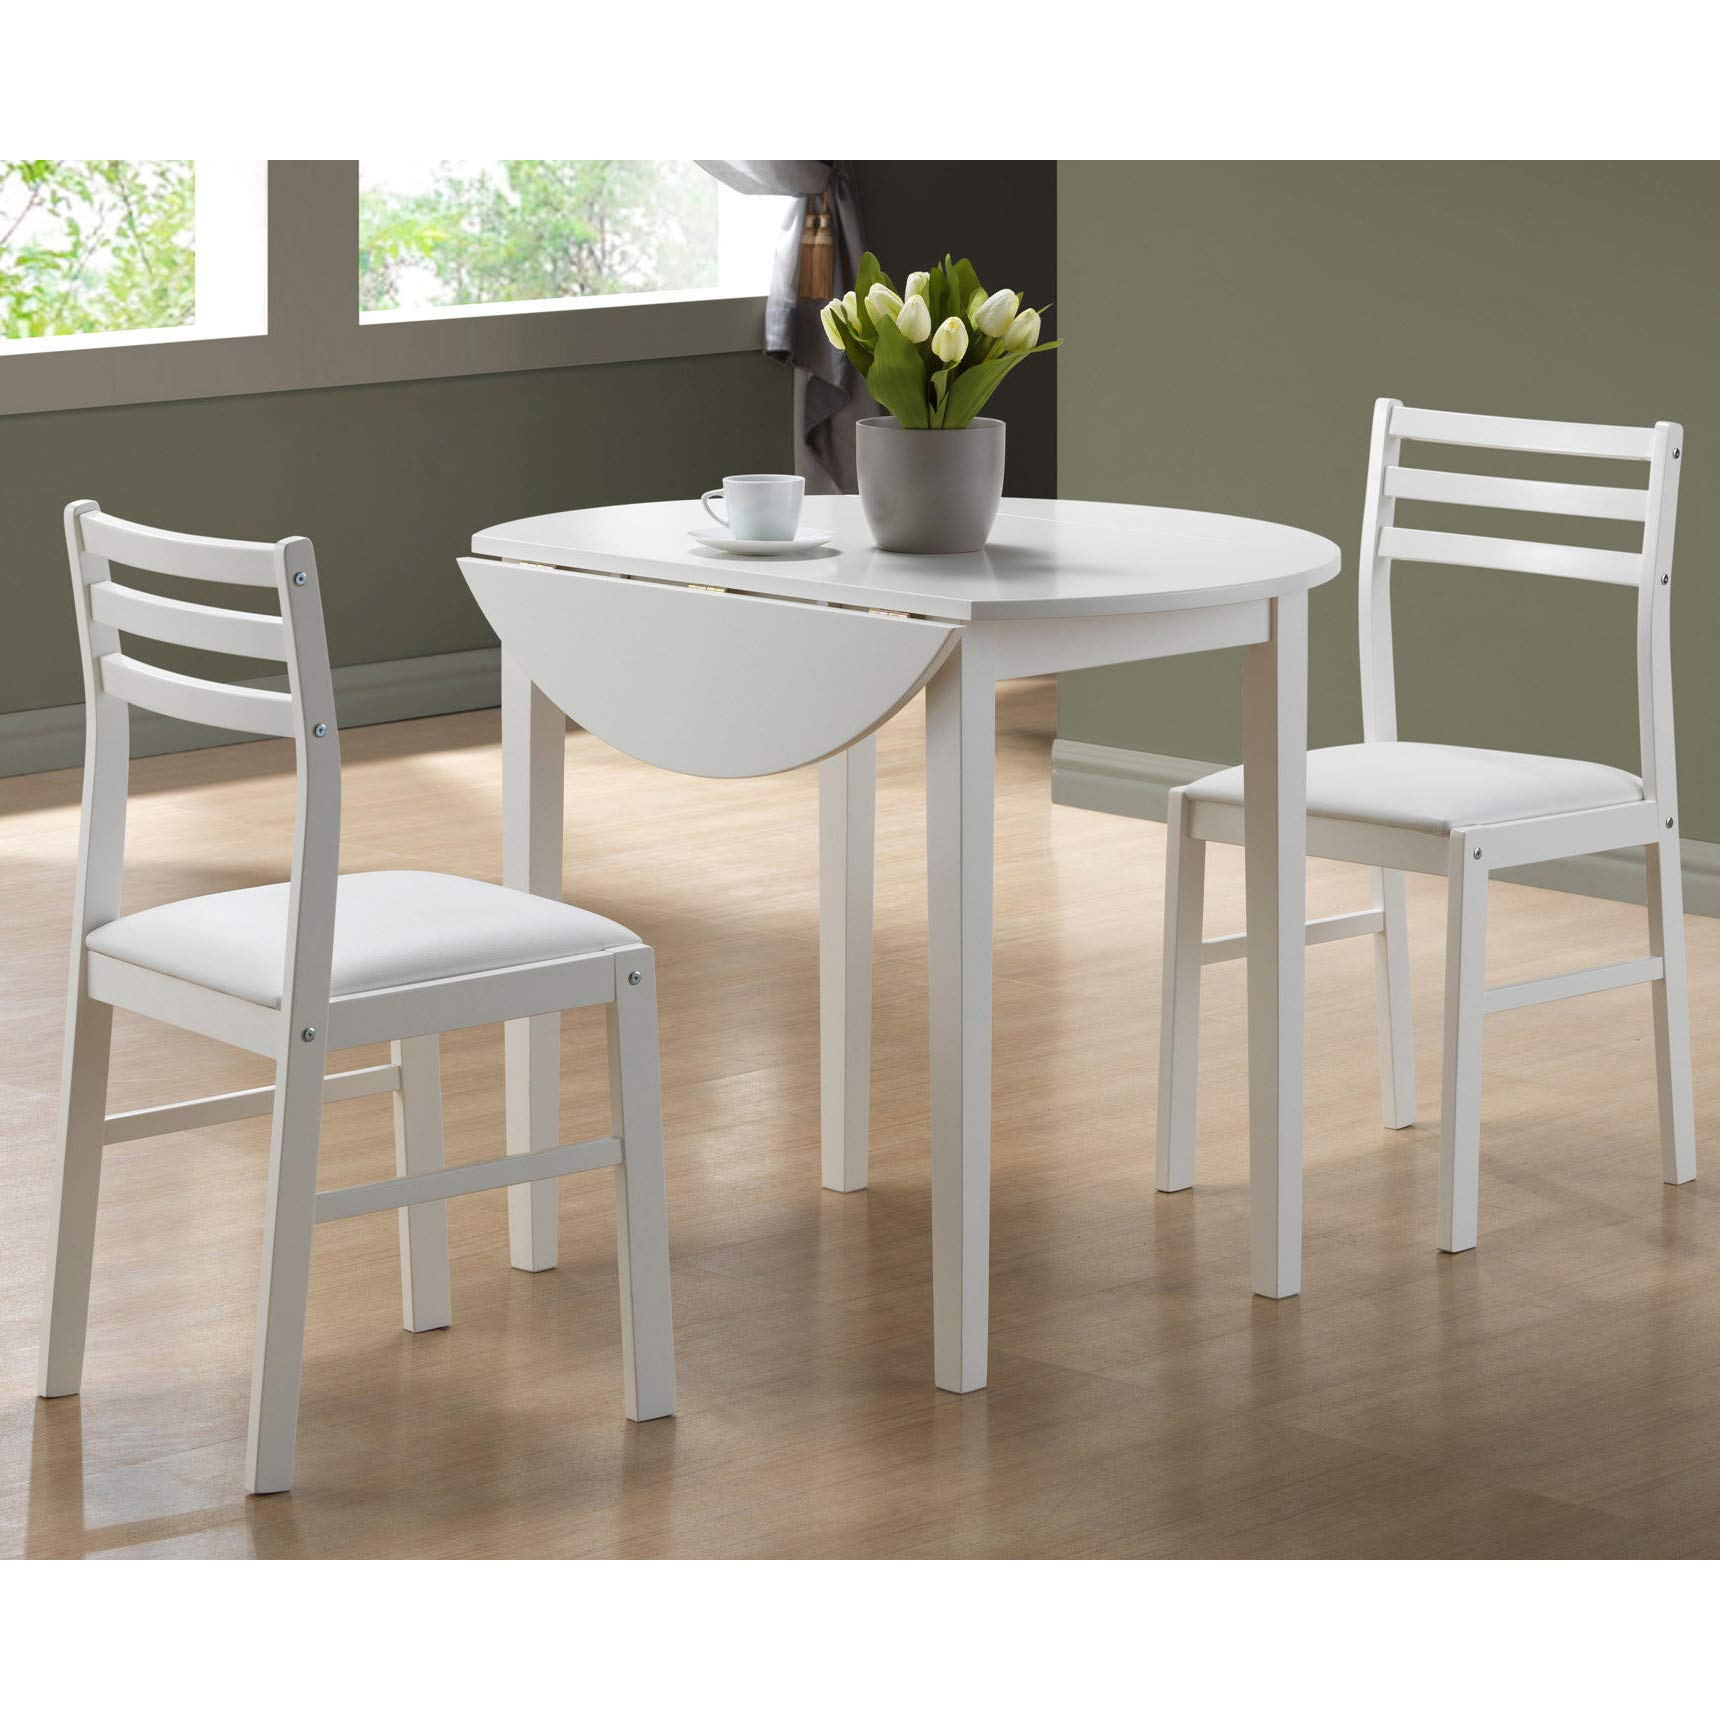 Monarch Specialties I I 1008 3-Piece Dining Set with 36'' Diameter Drop Leaf Table, White